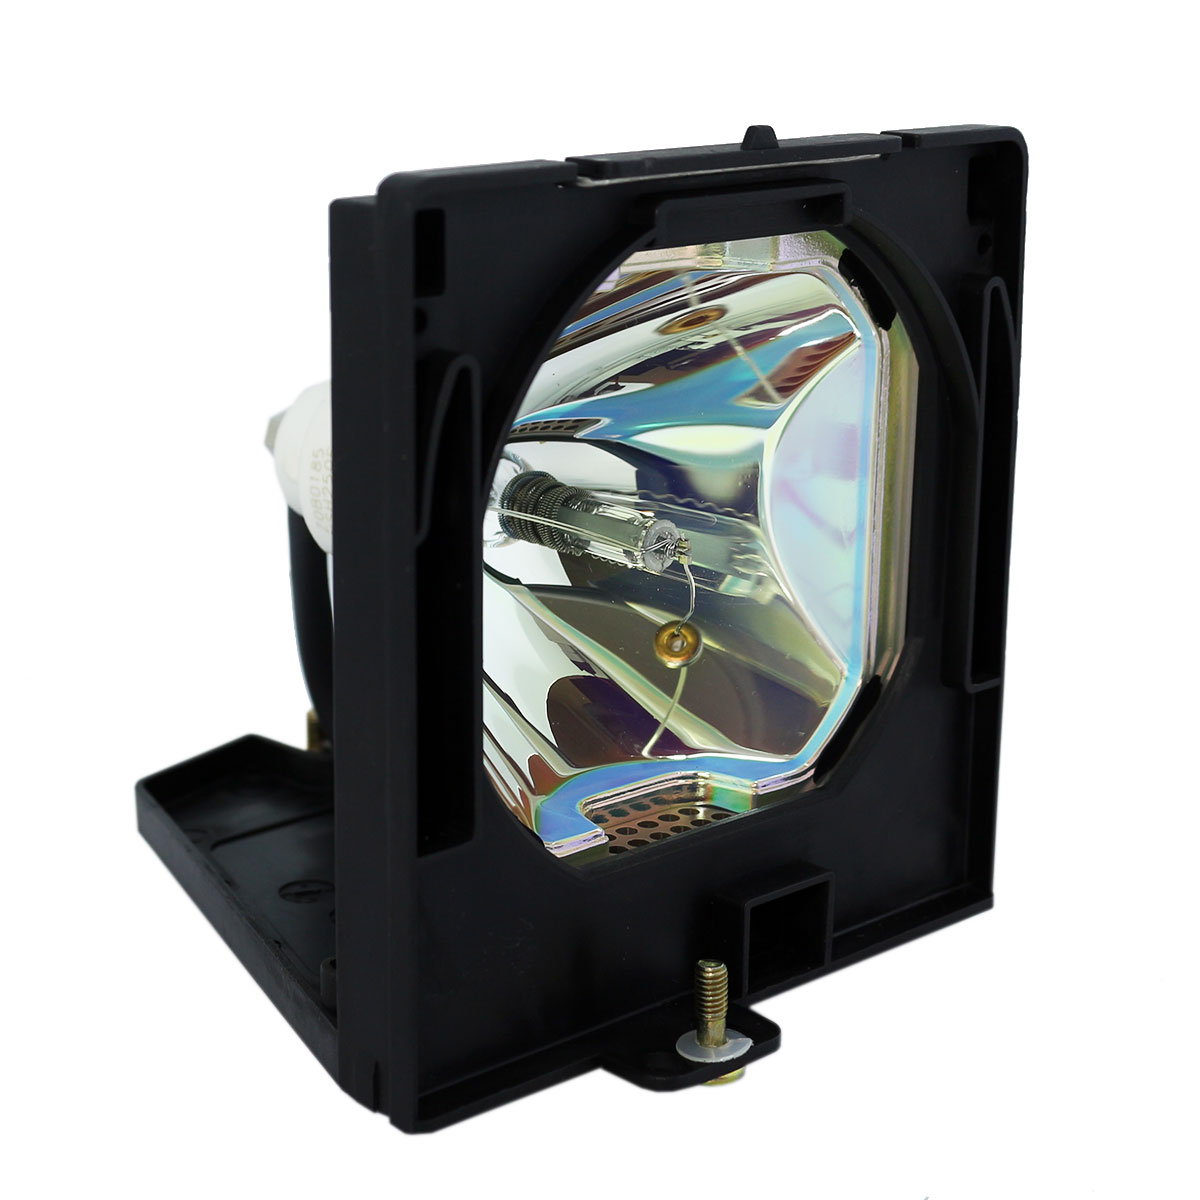 Original Ushio Projector Lamp Replacement for ASK Proxima LAMP-025 (Bulb Only) - image 3 de 5